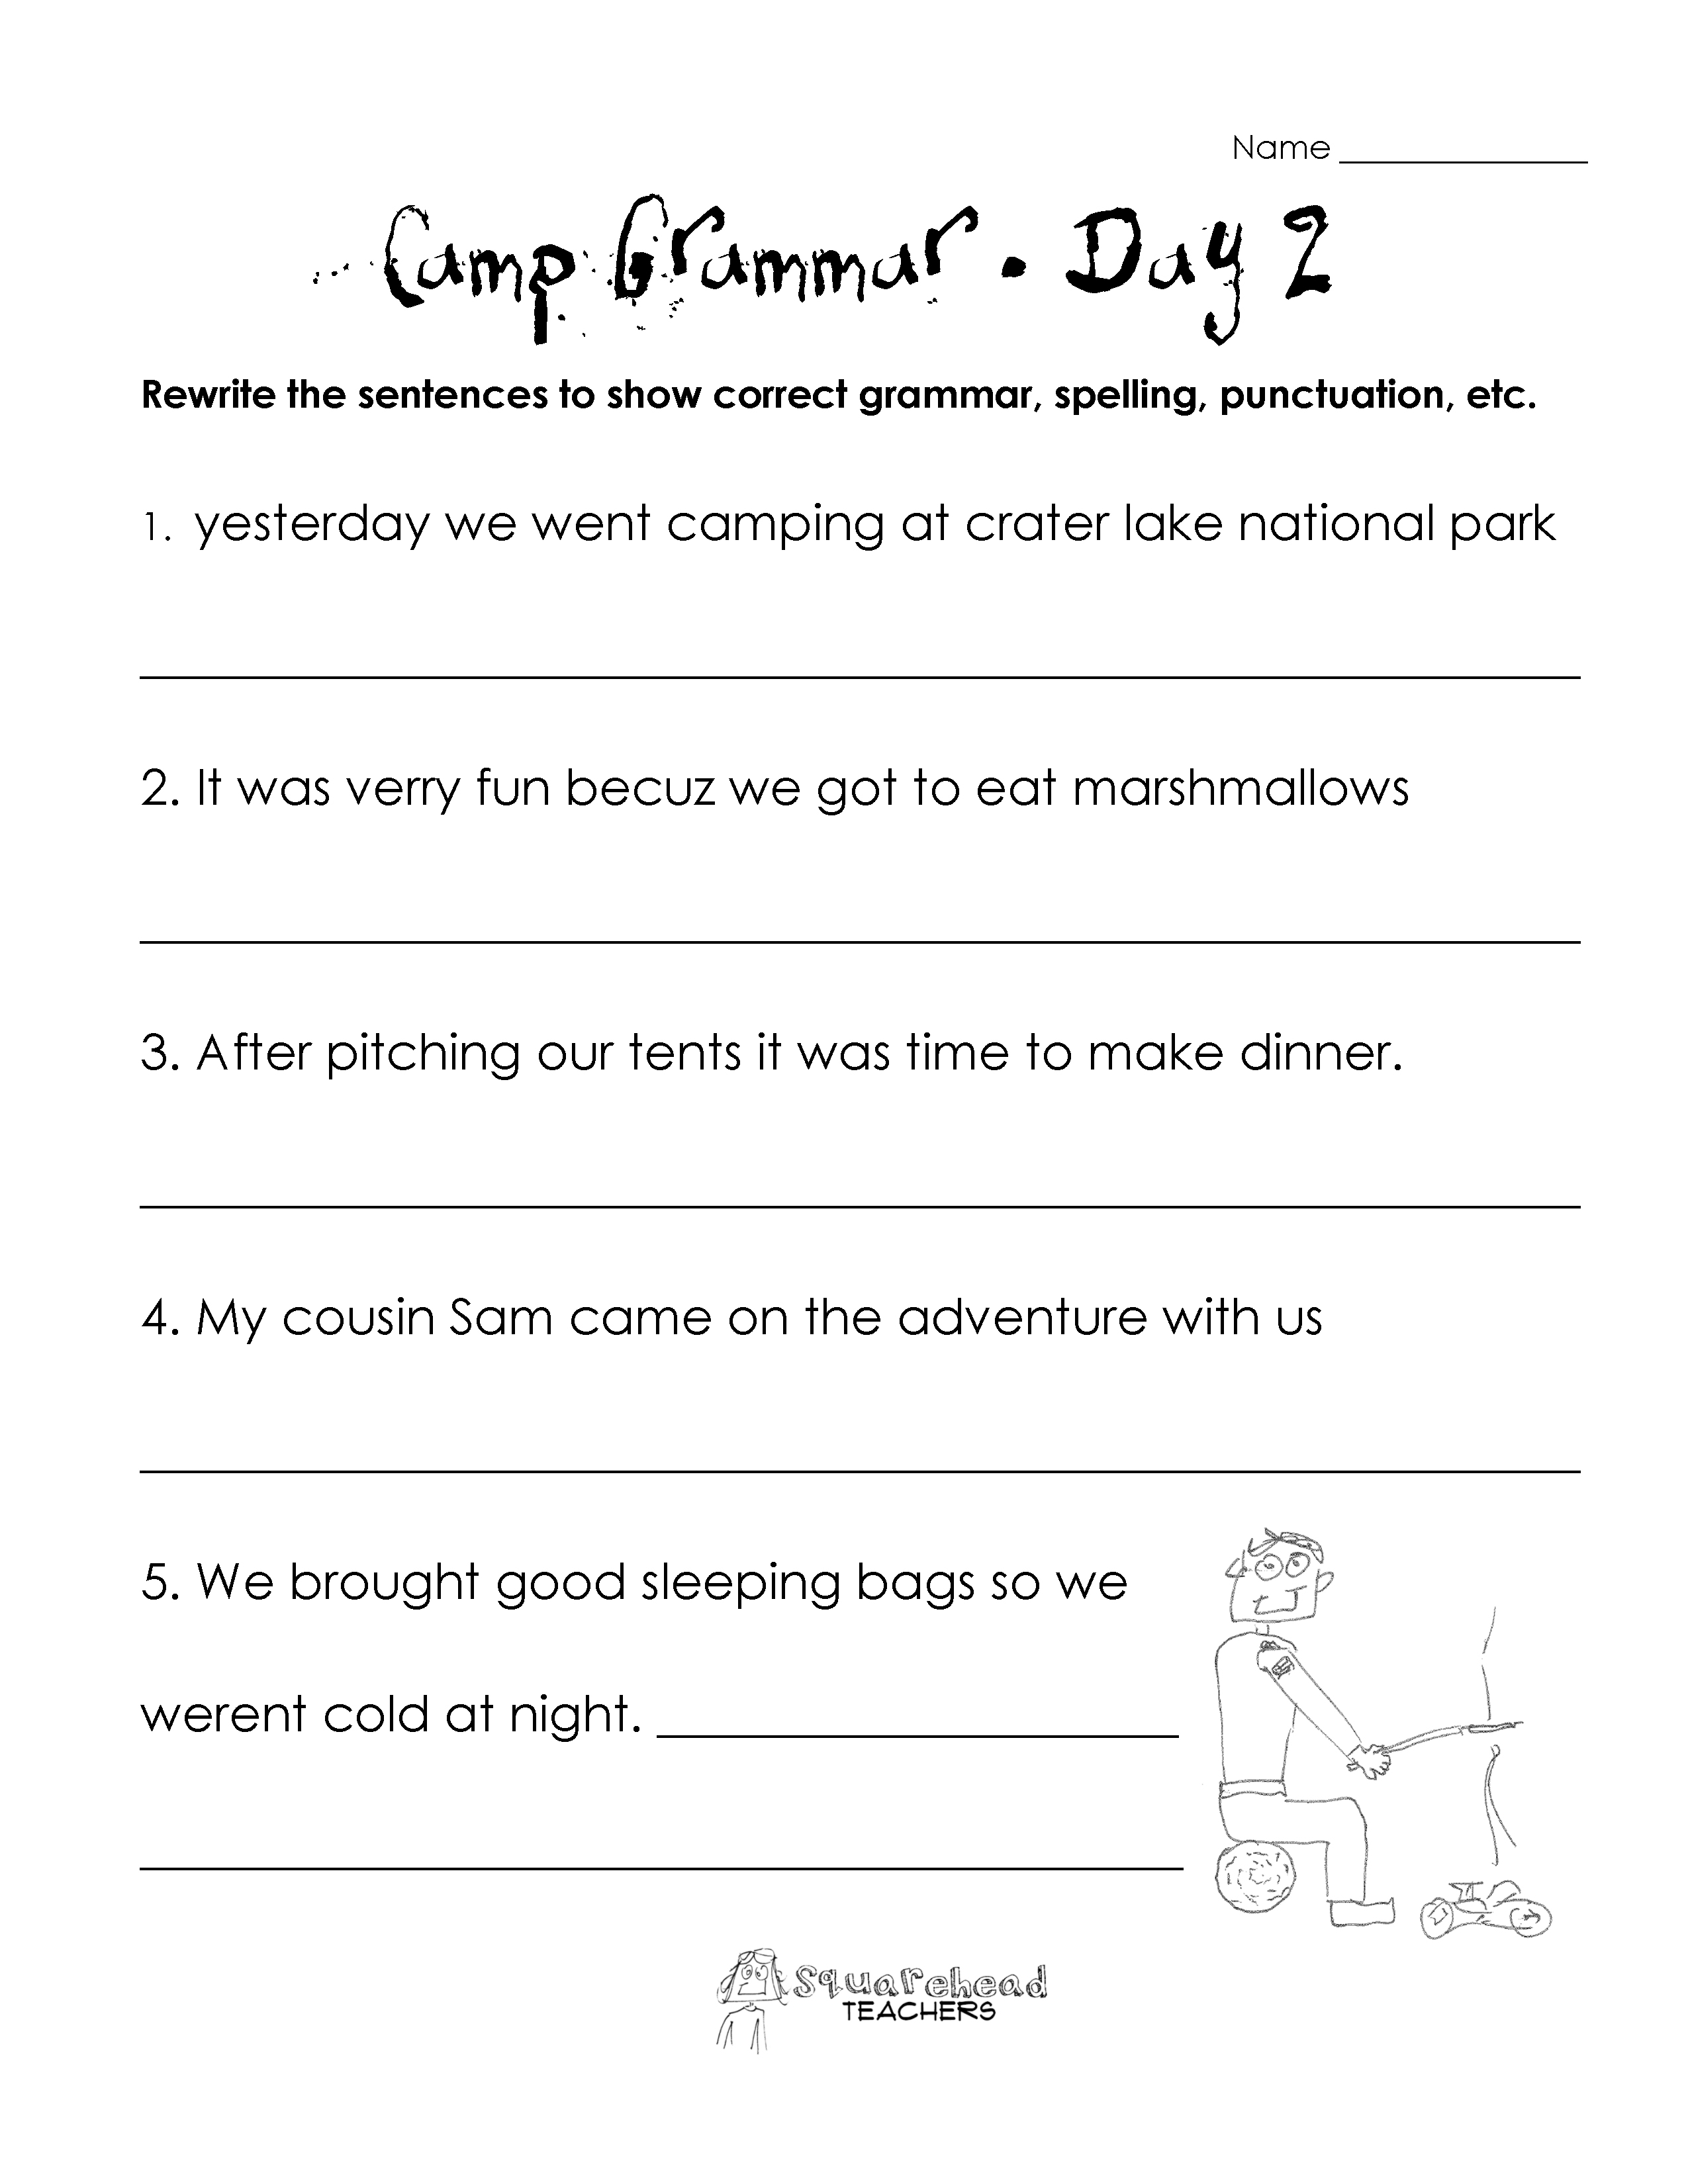 Worksheet Grammar For Grade 2 grammar squarehead teachers page 13 camp 1 2